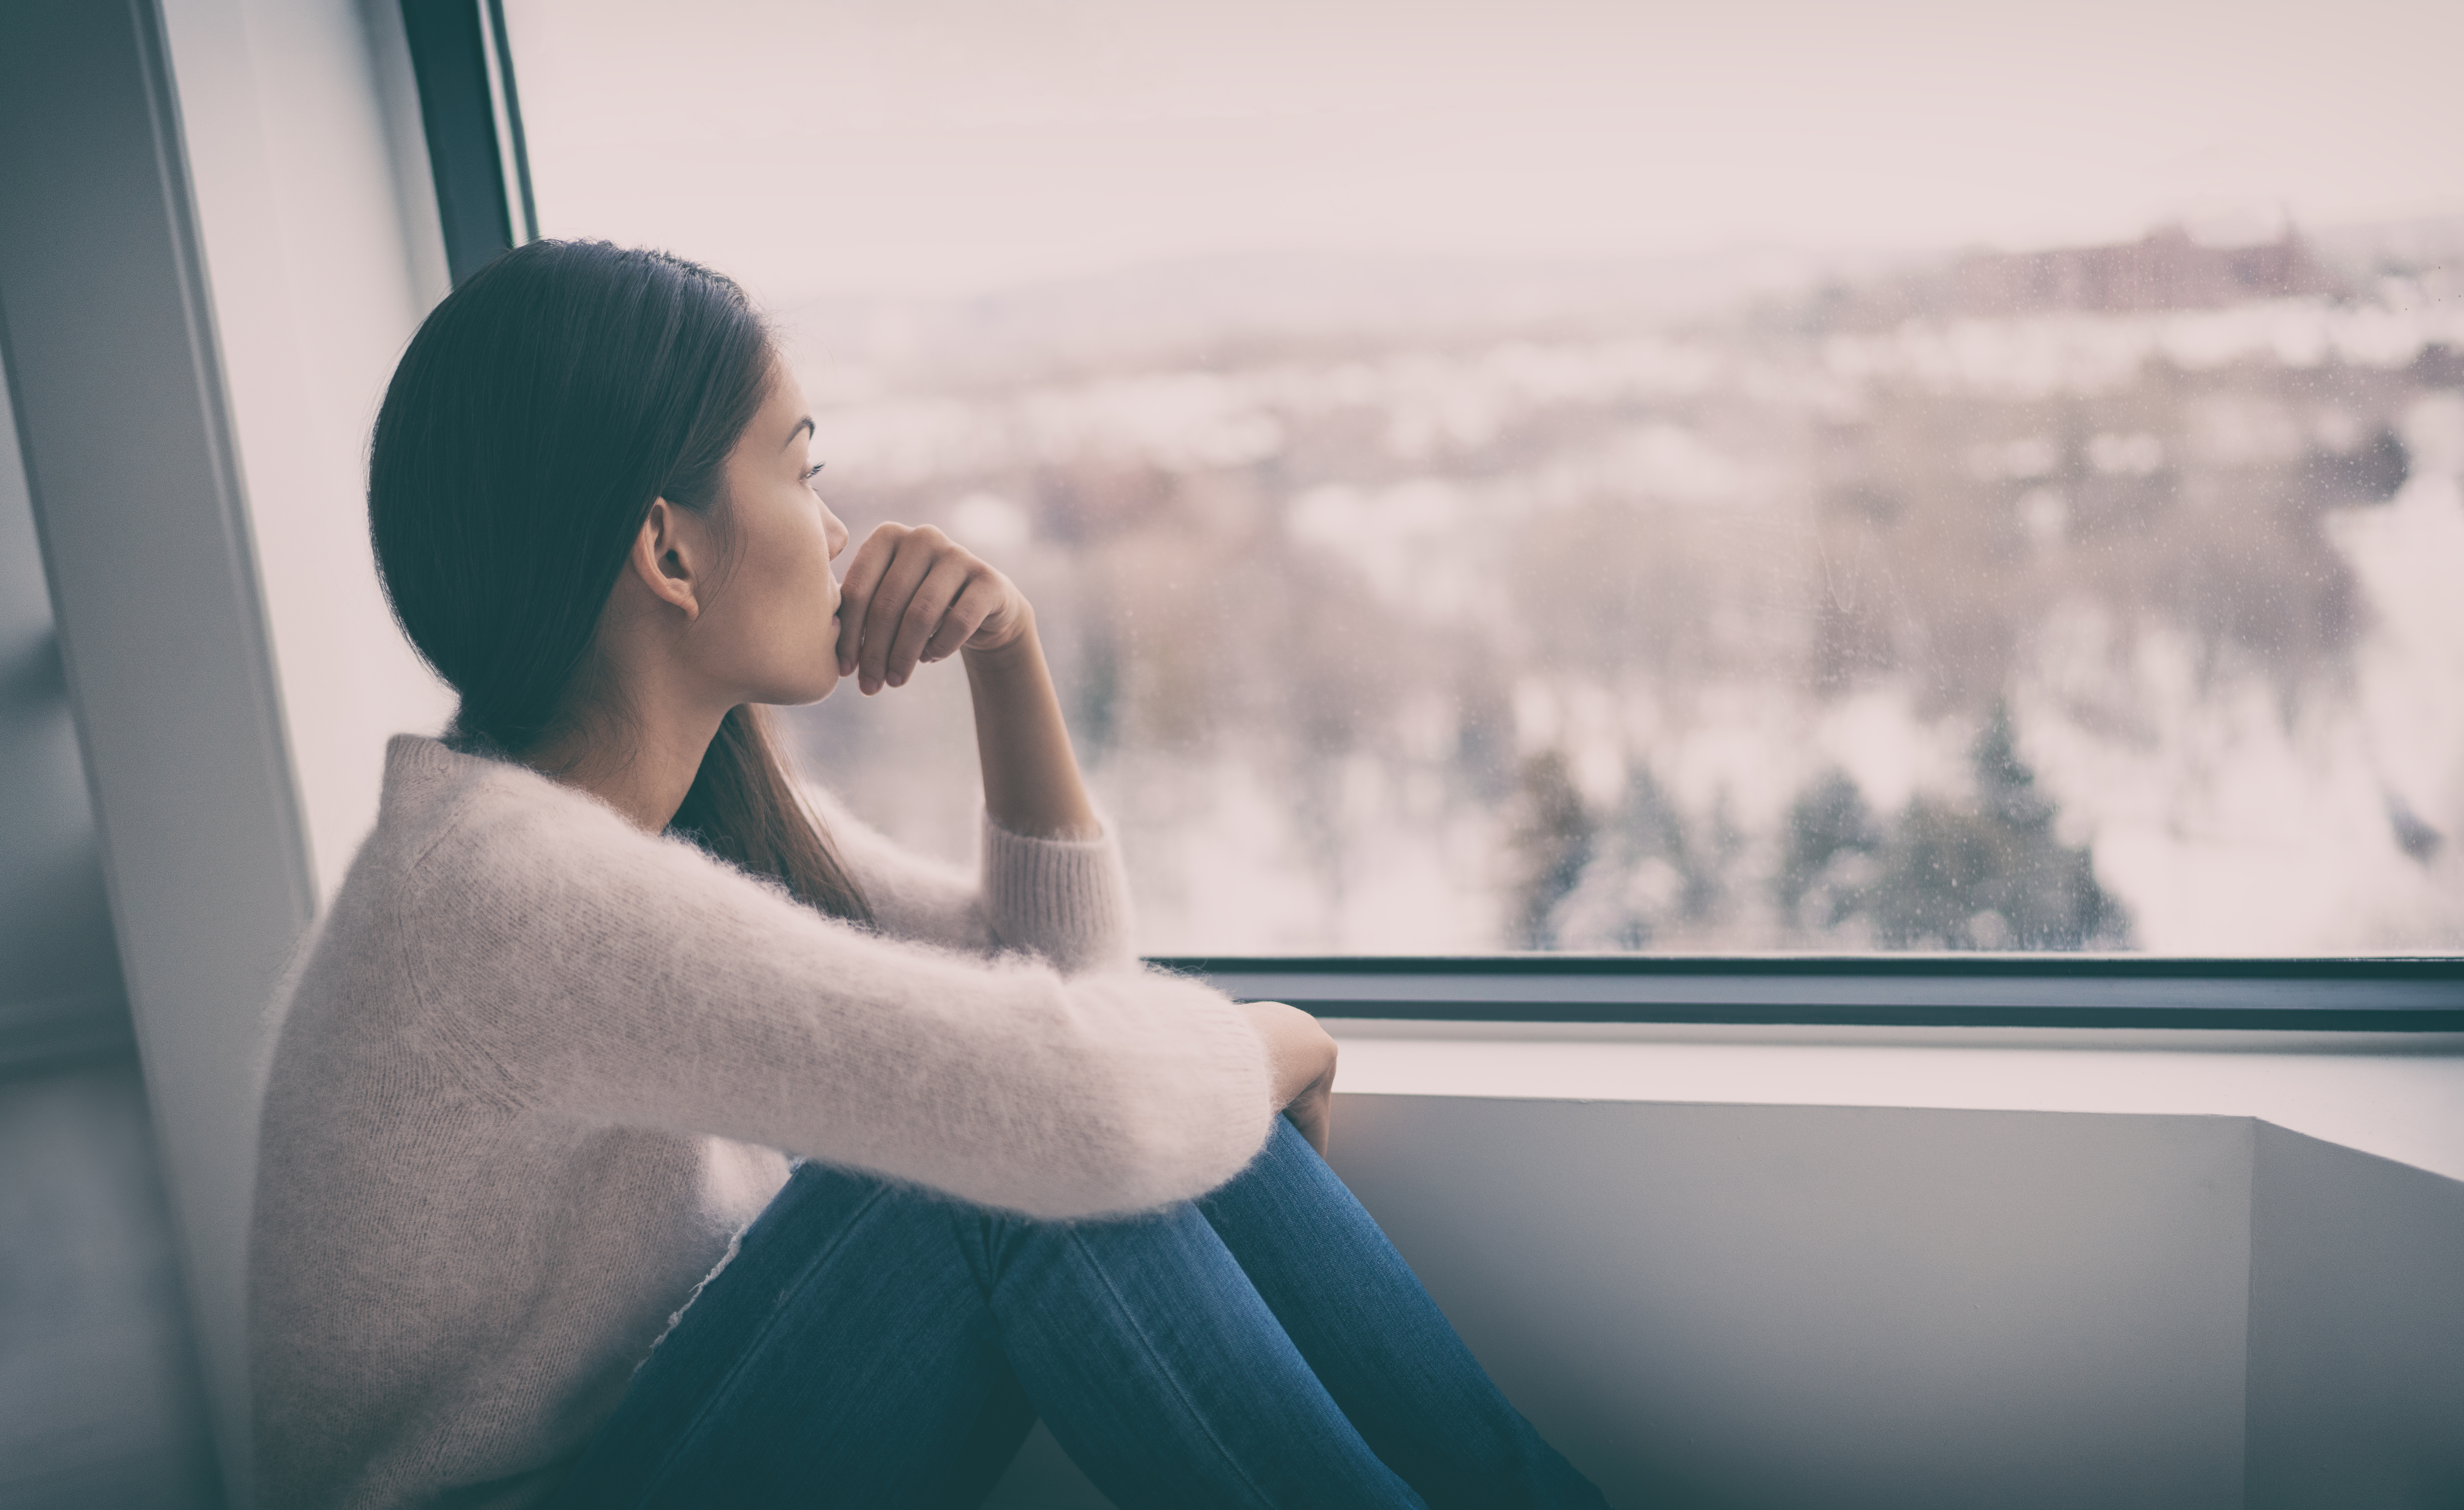 a women who looks sad is staring out of a window